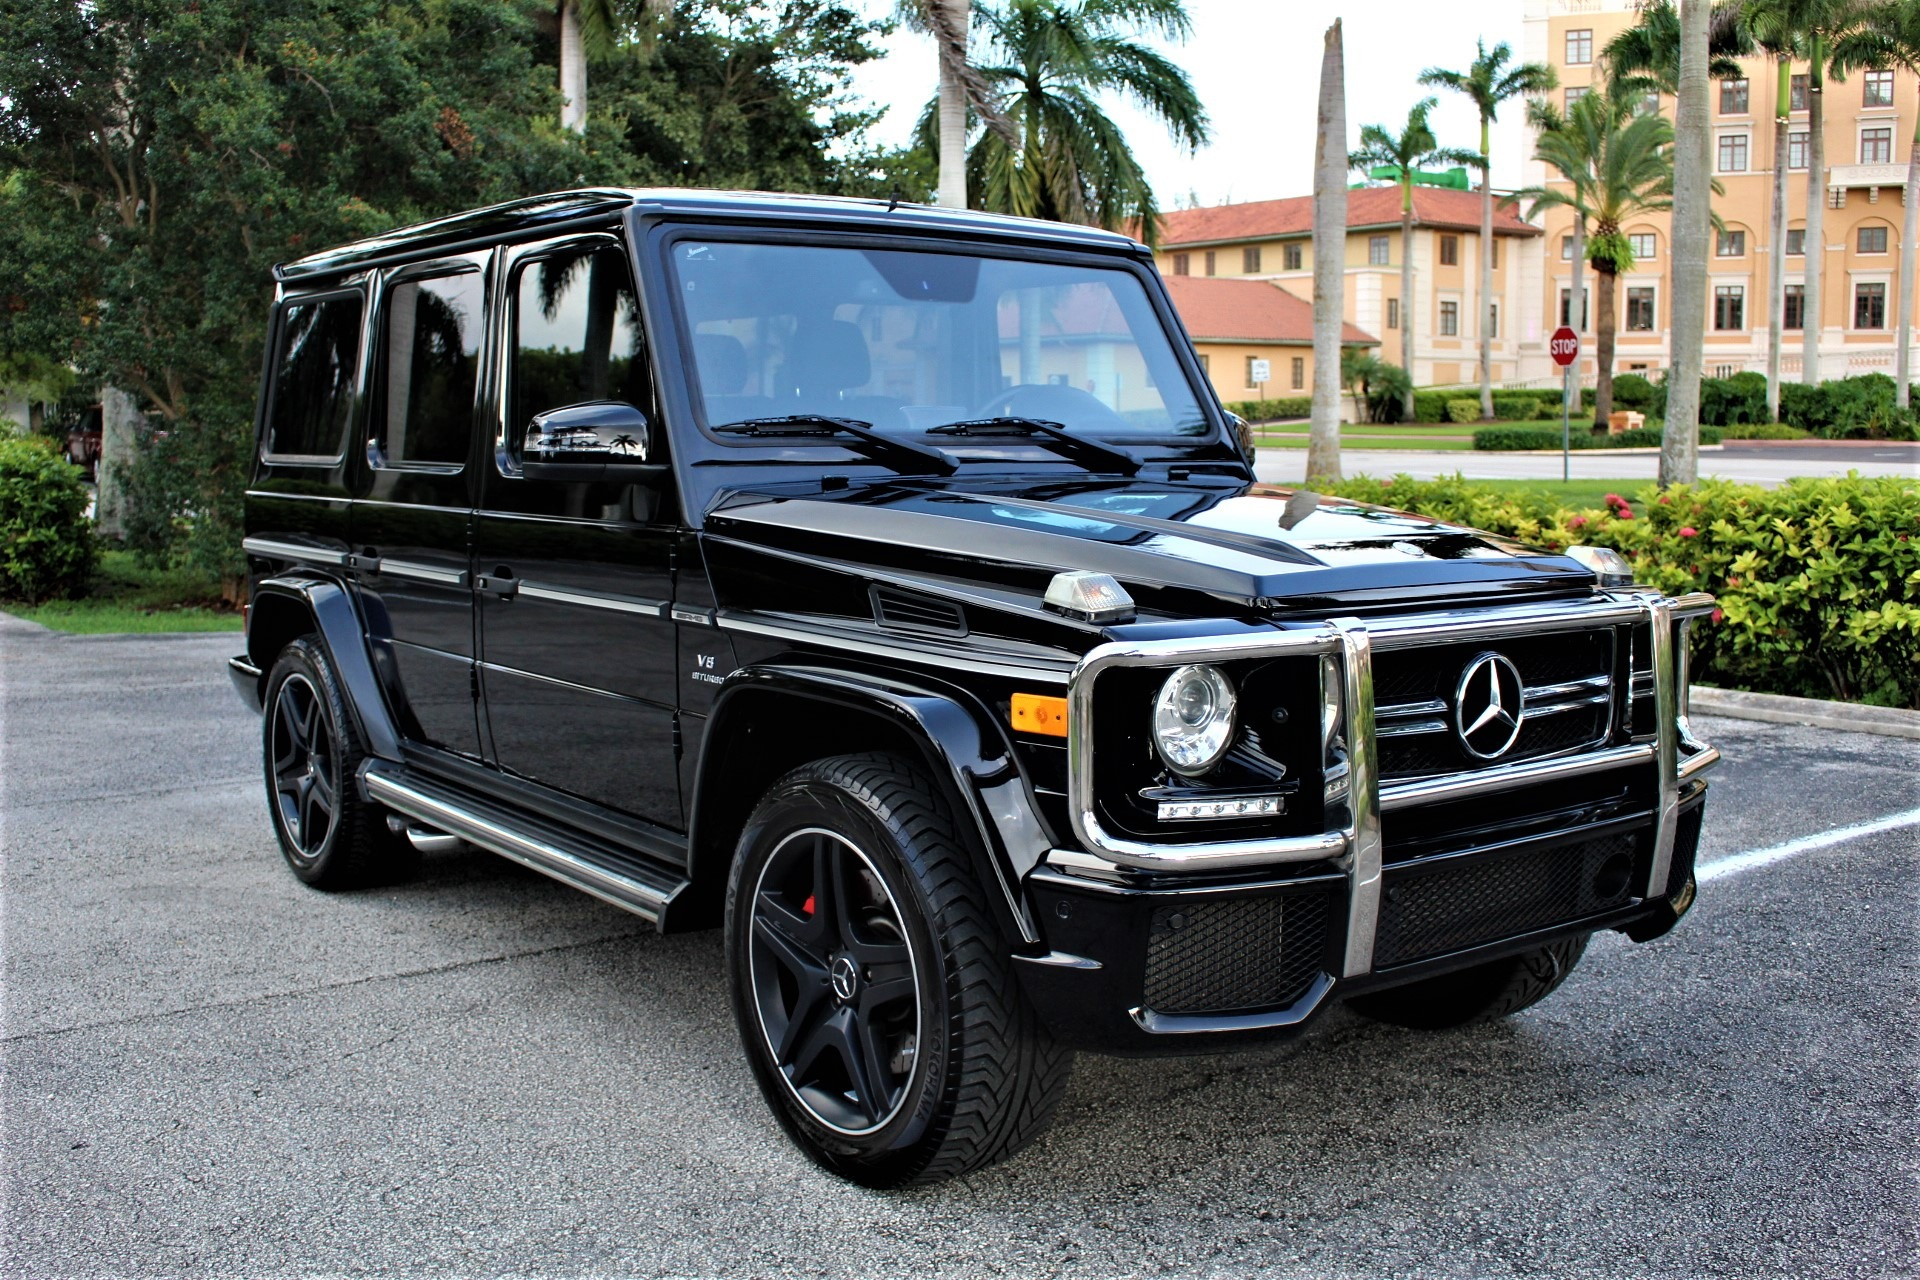 Used 2013 Mercedes-Benz G-Class G 63 AMG for sale Sold at The Gables Sports Cars in Miami FL 33146 4